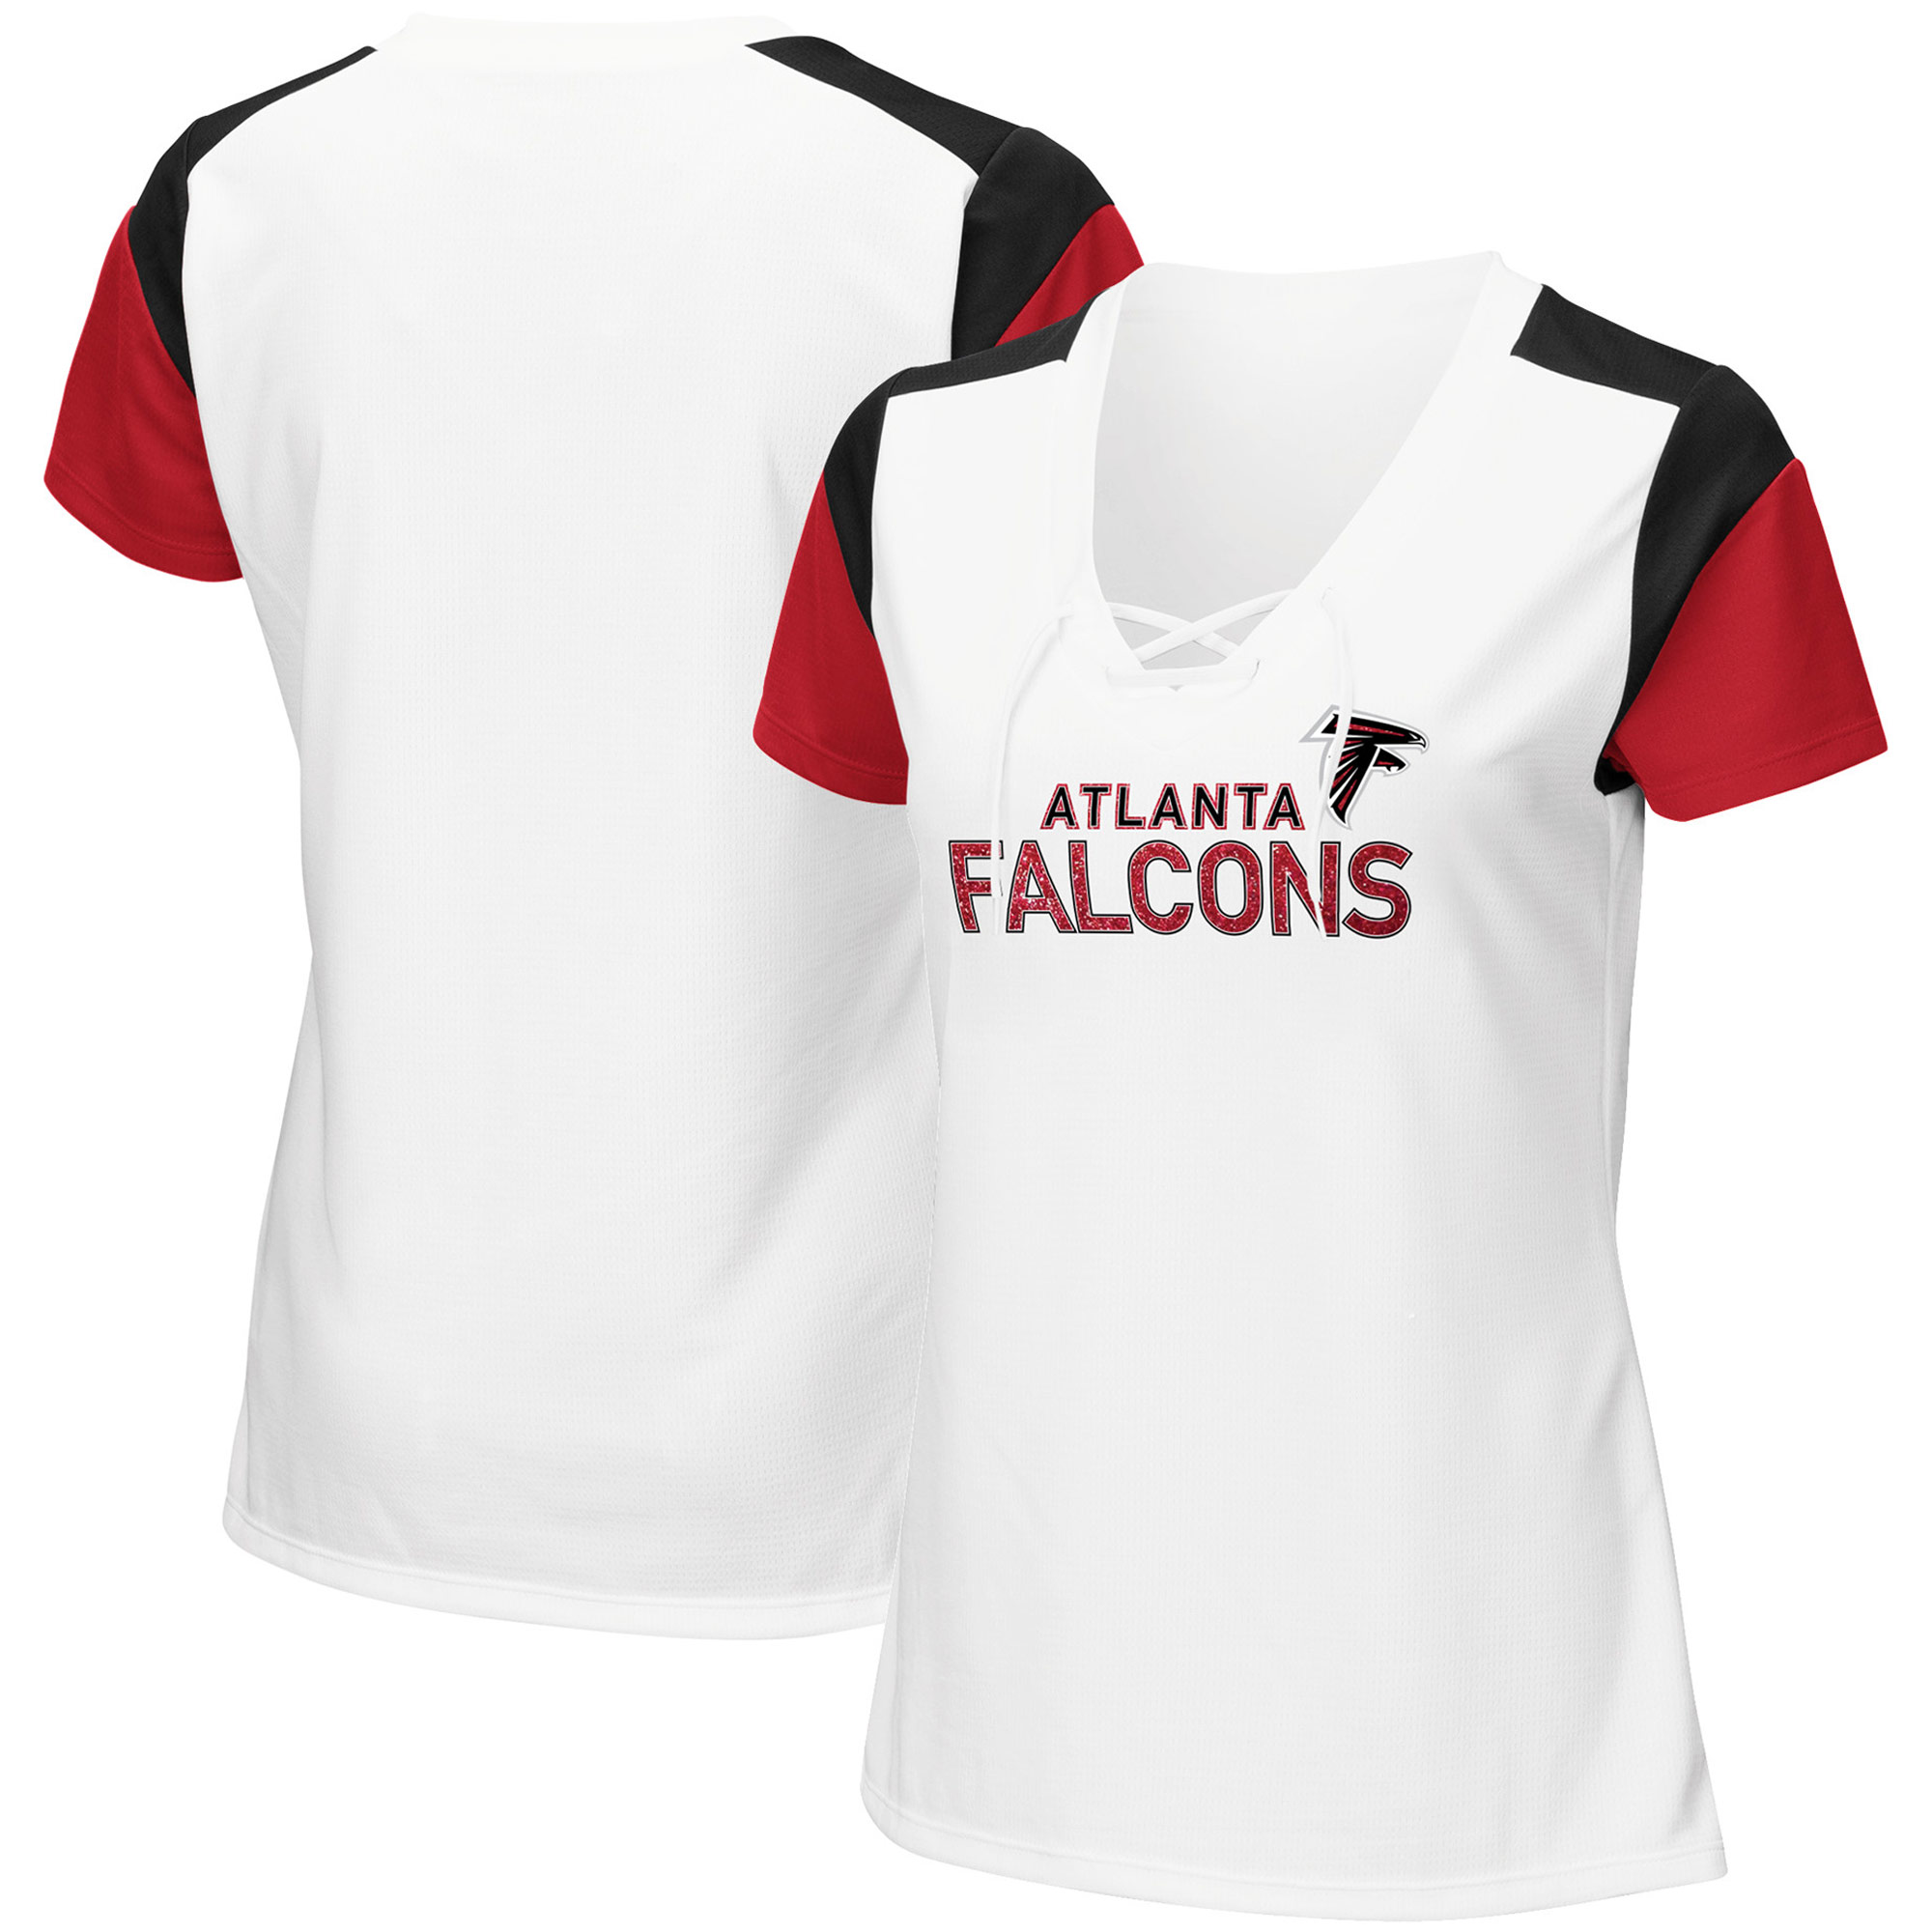 Women's Majestic White/Black Atlanta Falcons Shimmer Lace-Up V-Neck T-Shirt